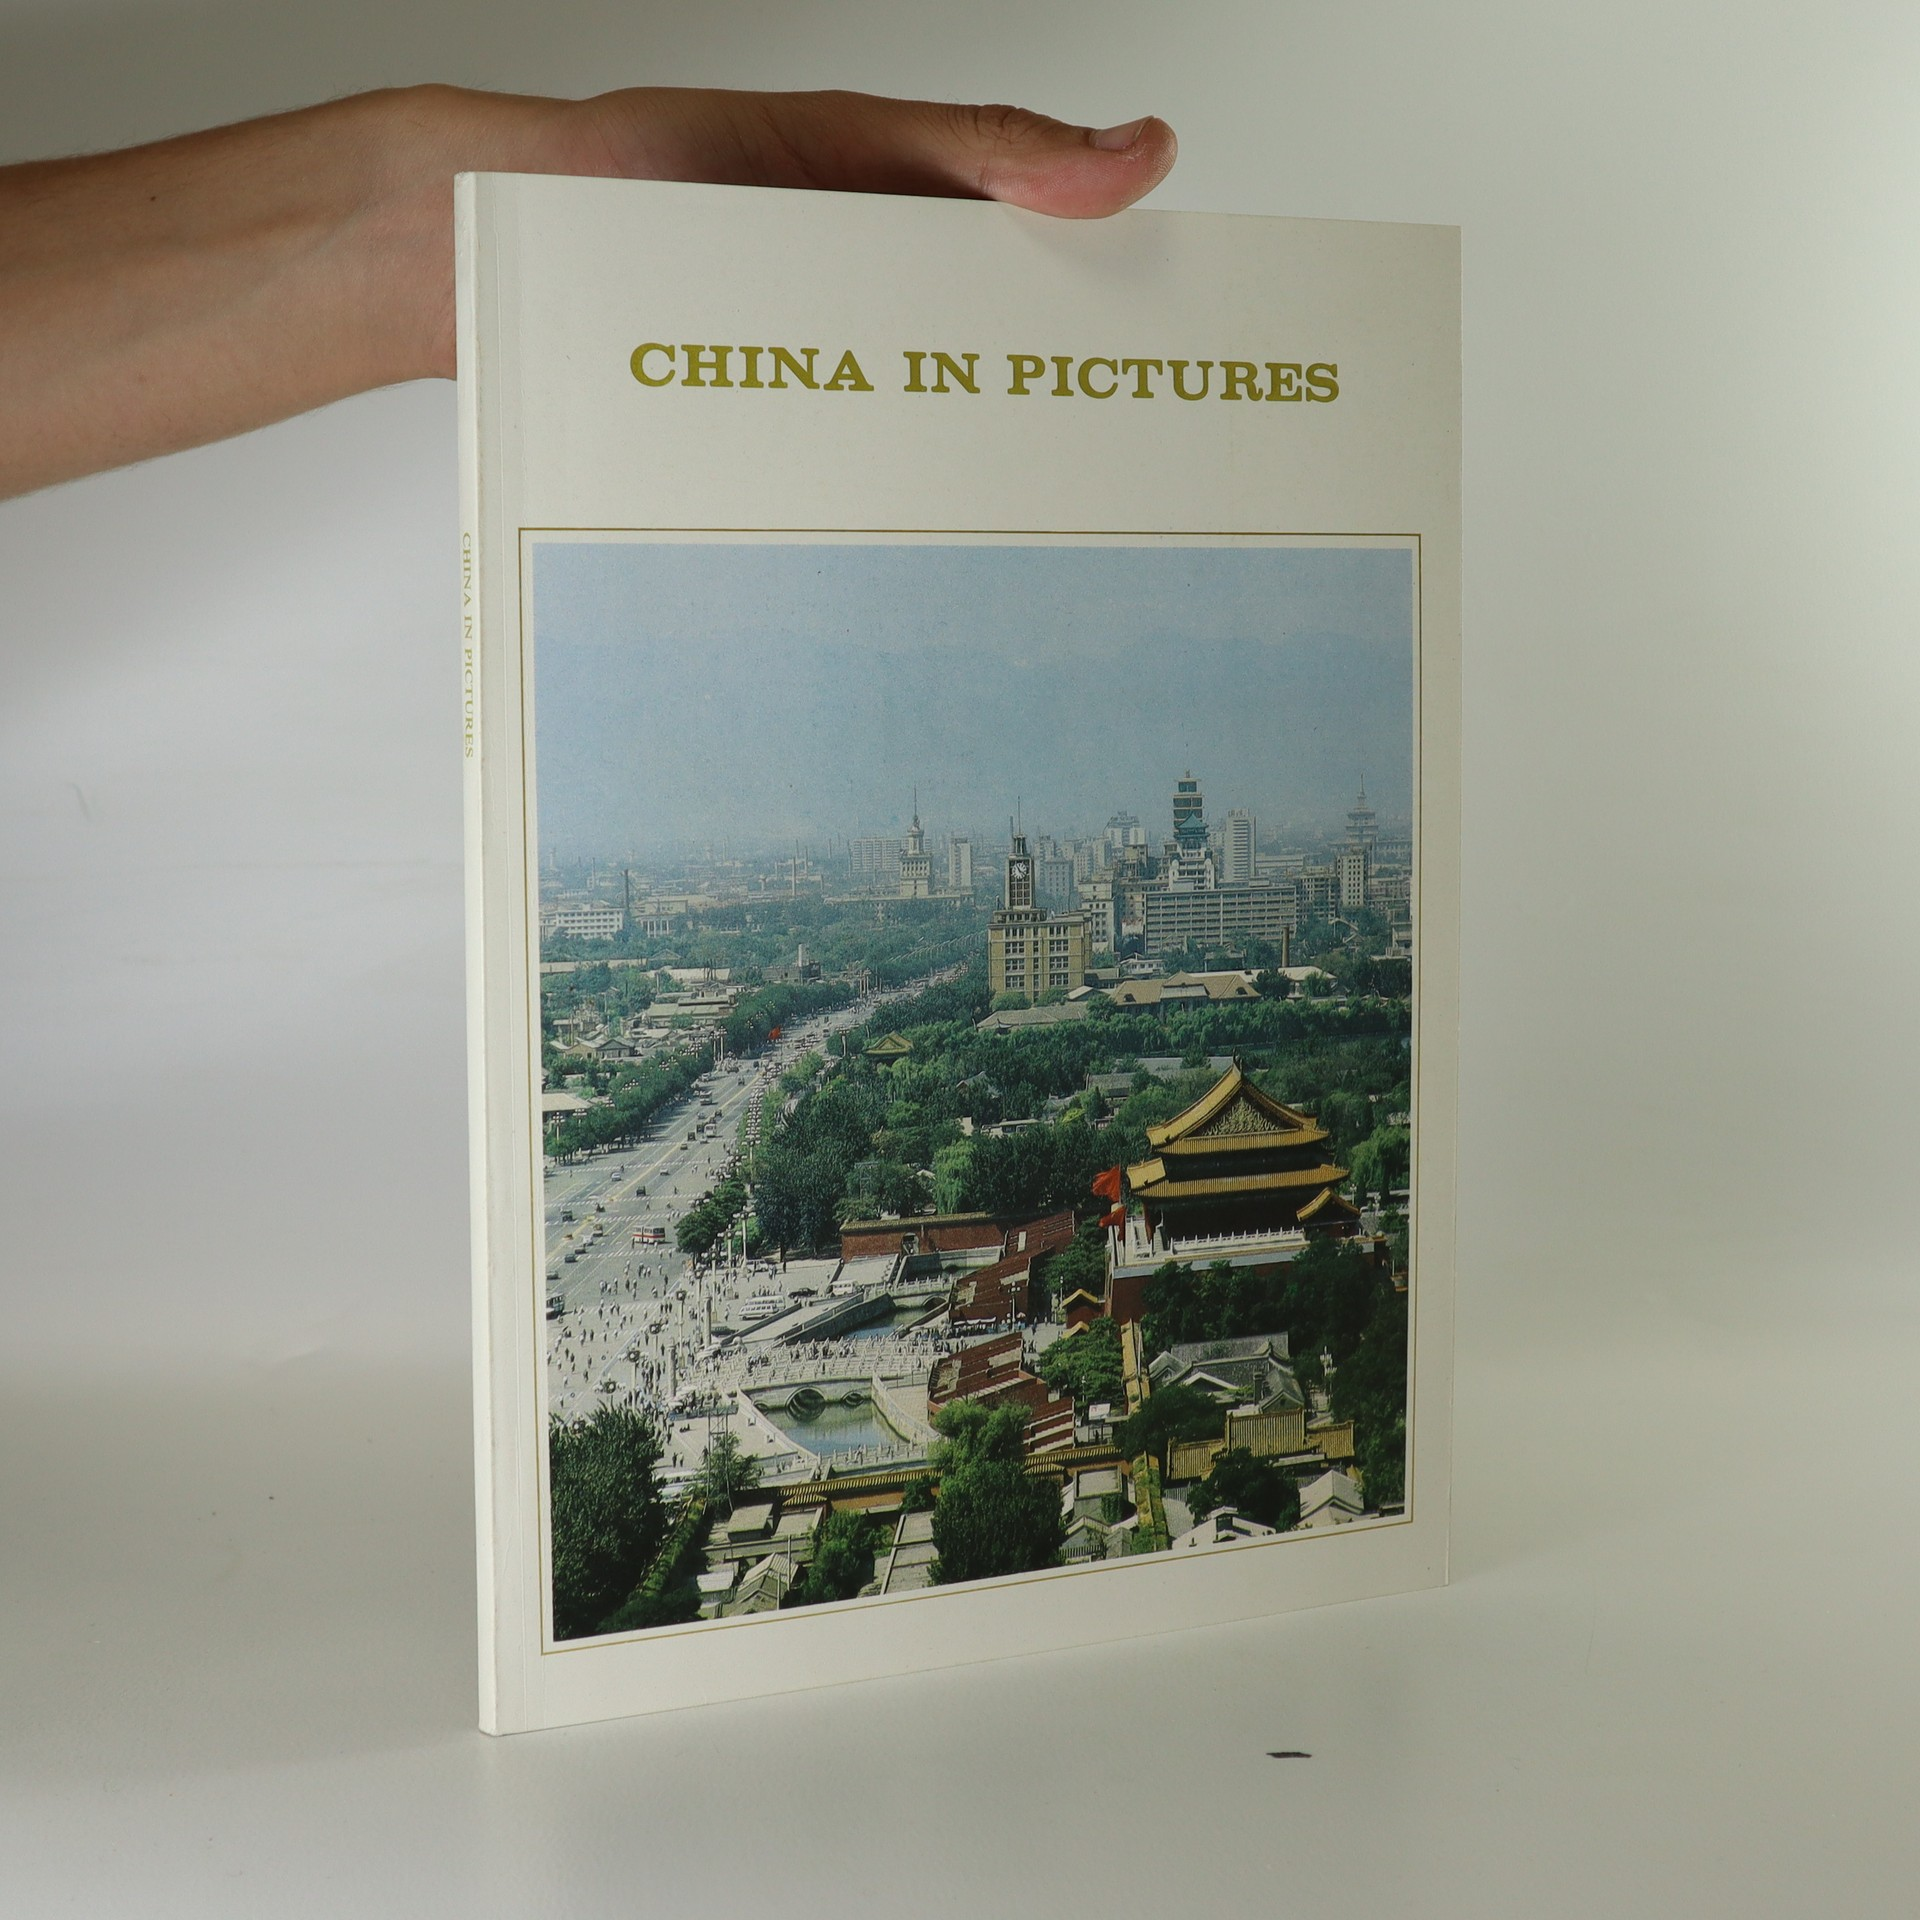 antikvární kniha China in Pictures, 1984